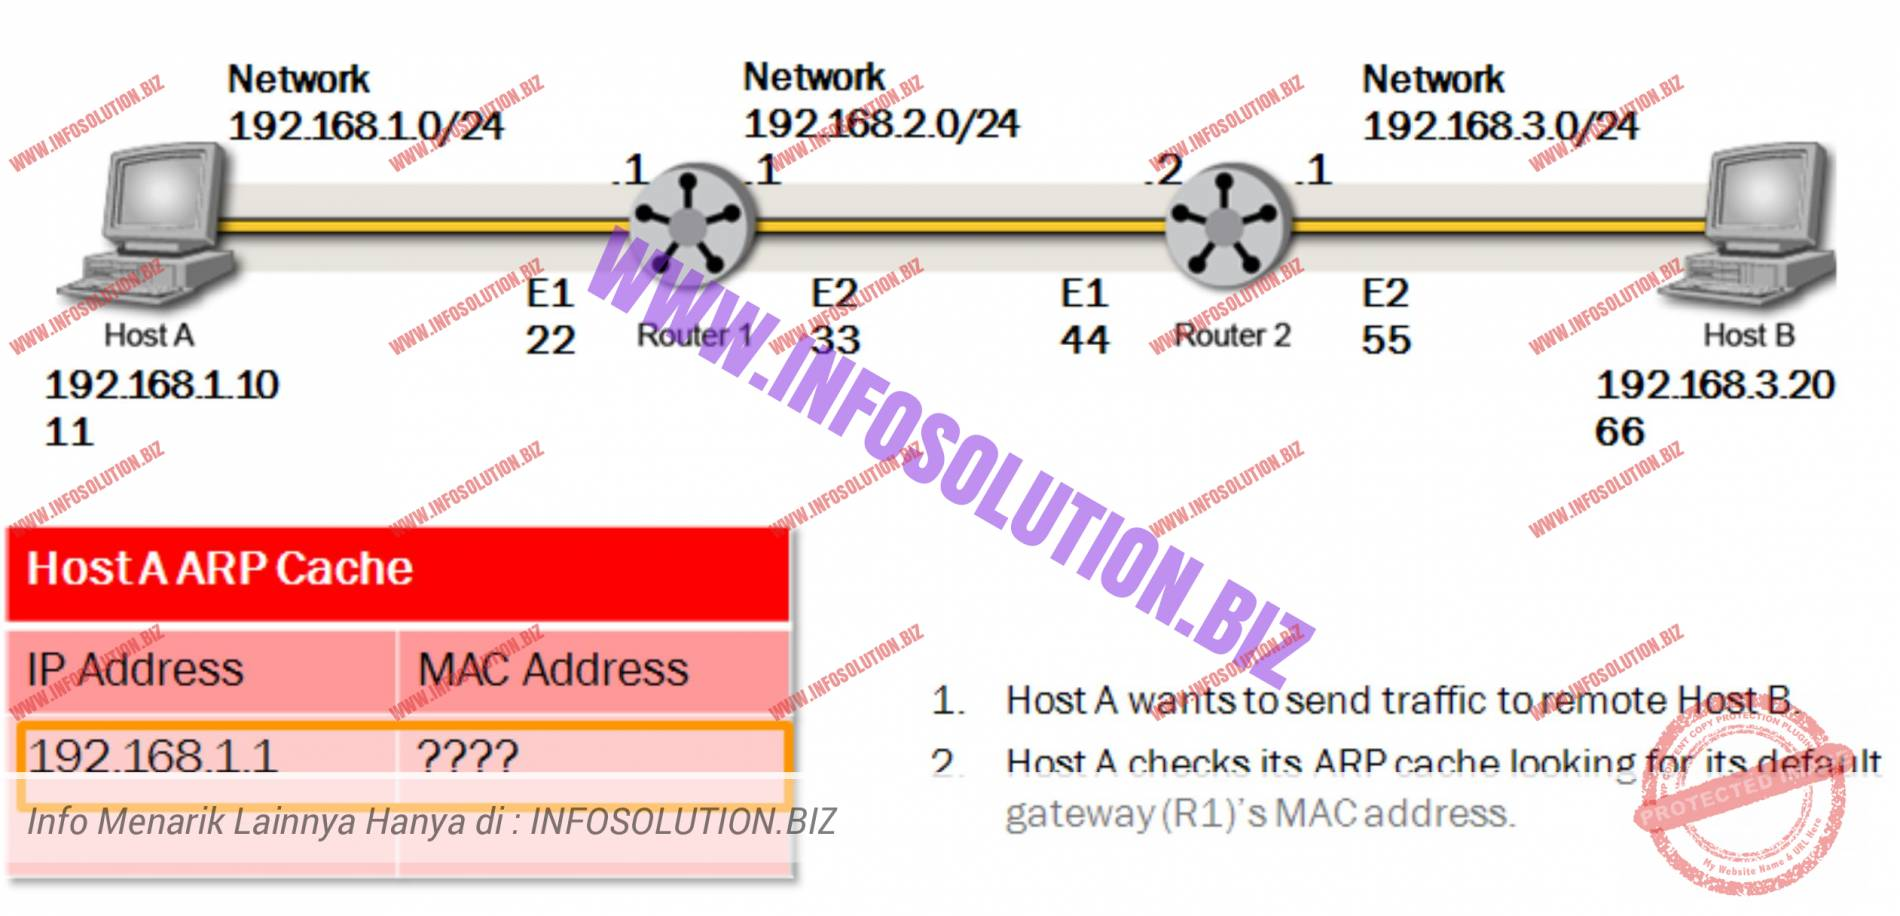 details how a packet is routed from Host A to Host B on another subnet or network address